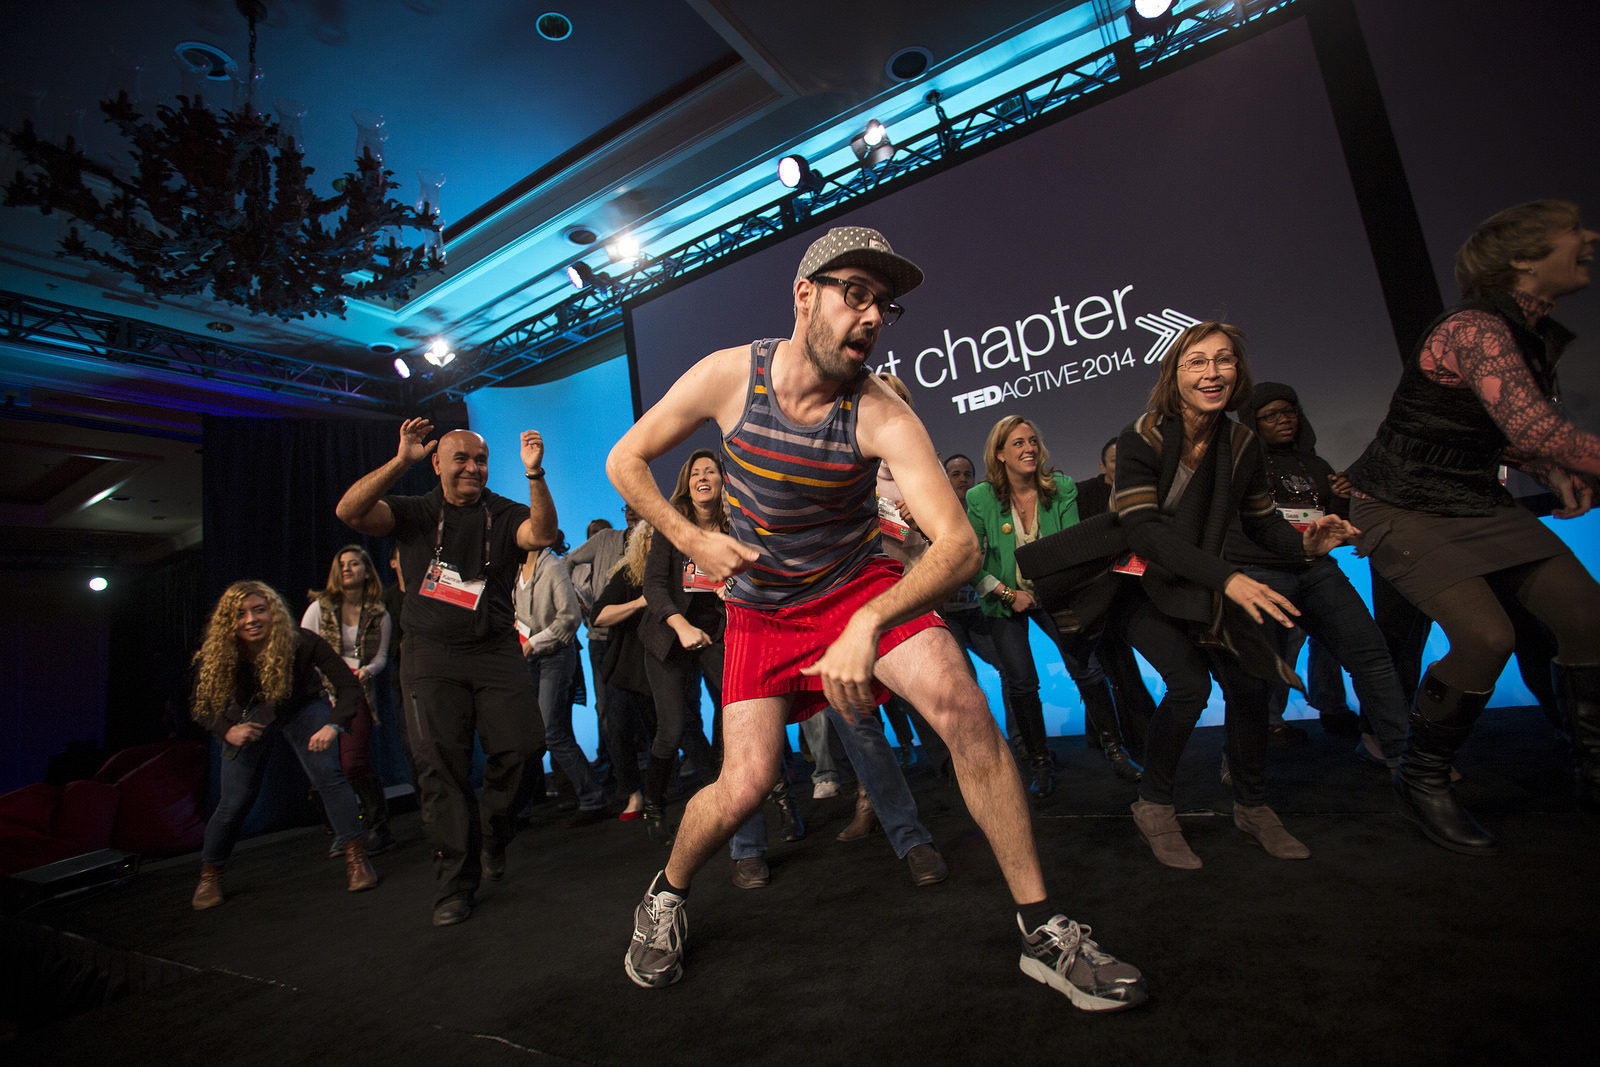 Dance time at TEDActive 2014. Photo: Marla Aufmuth